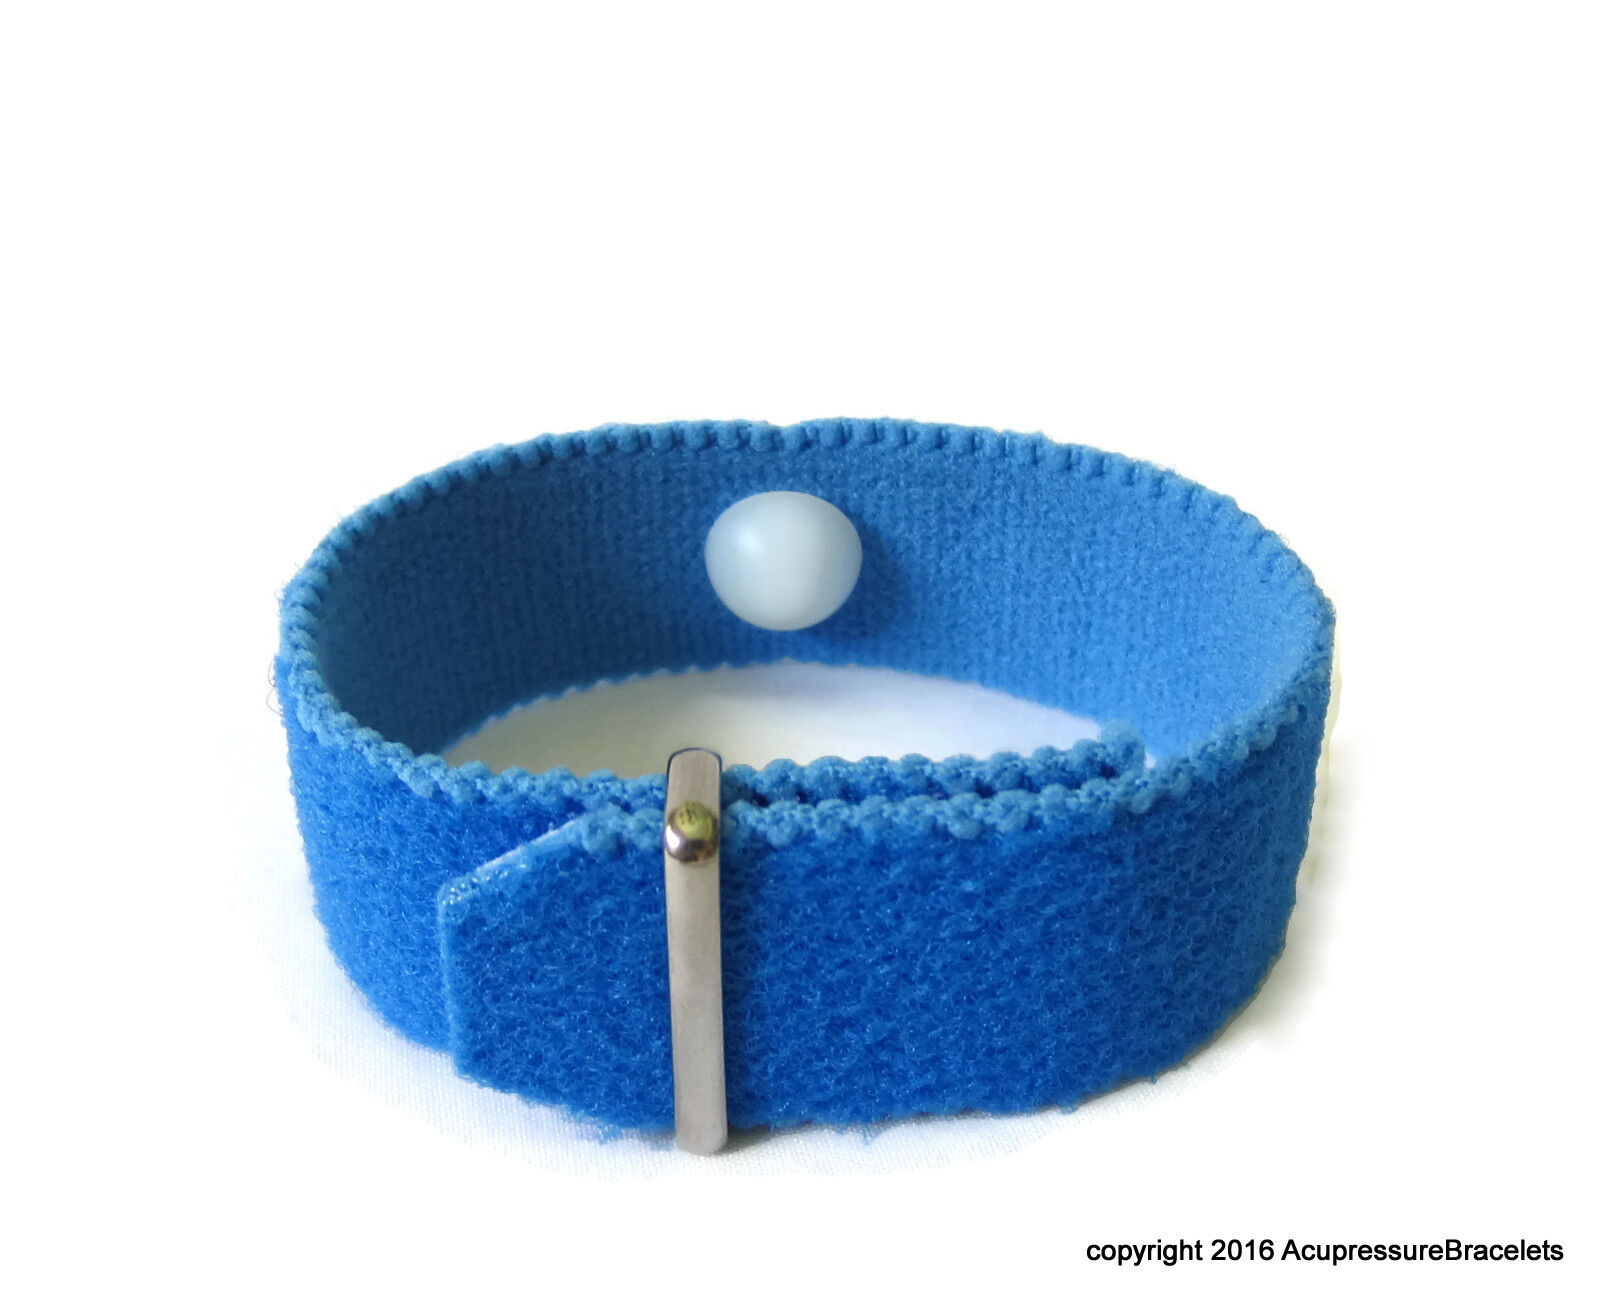 Insomnia Relief H7 Acupressure Bracelet for Sleeplessness, Anxiety, Nervousness 1